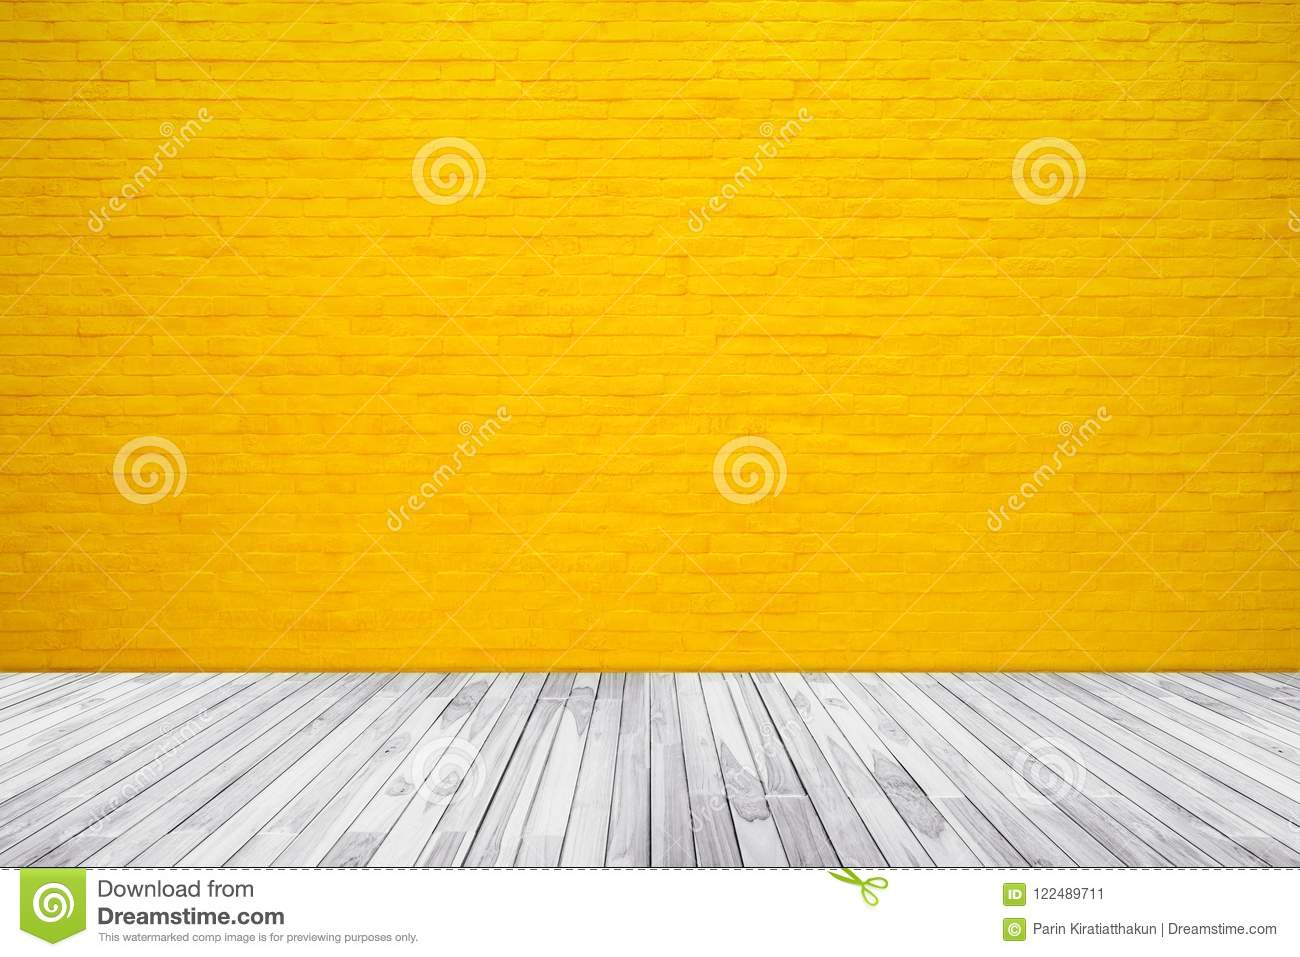 Yellow Brick Wall Texture With Wood Floor Background Stock Image ...